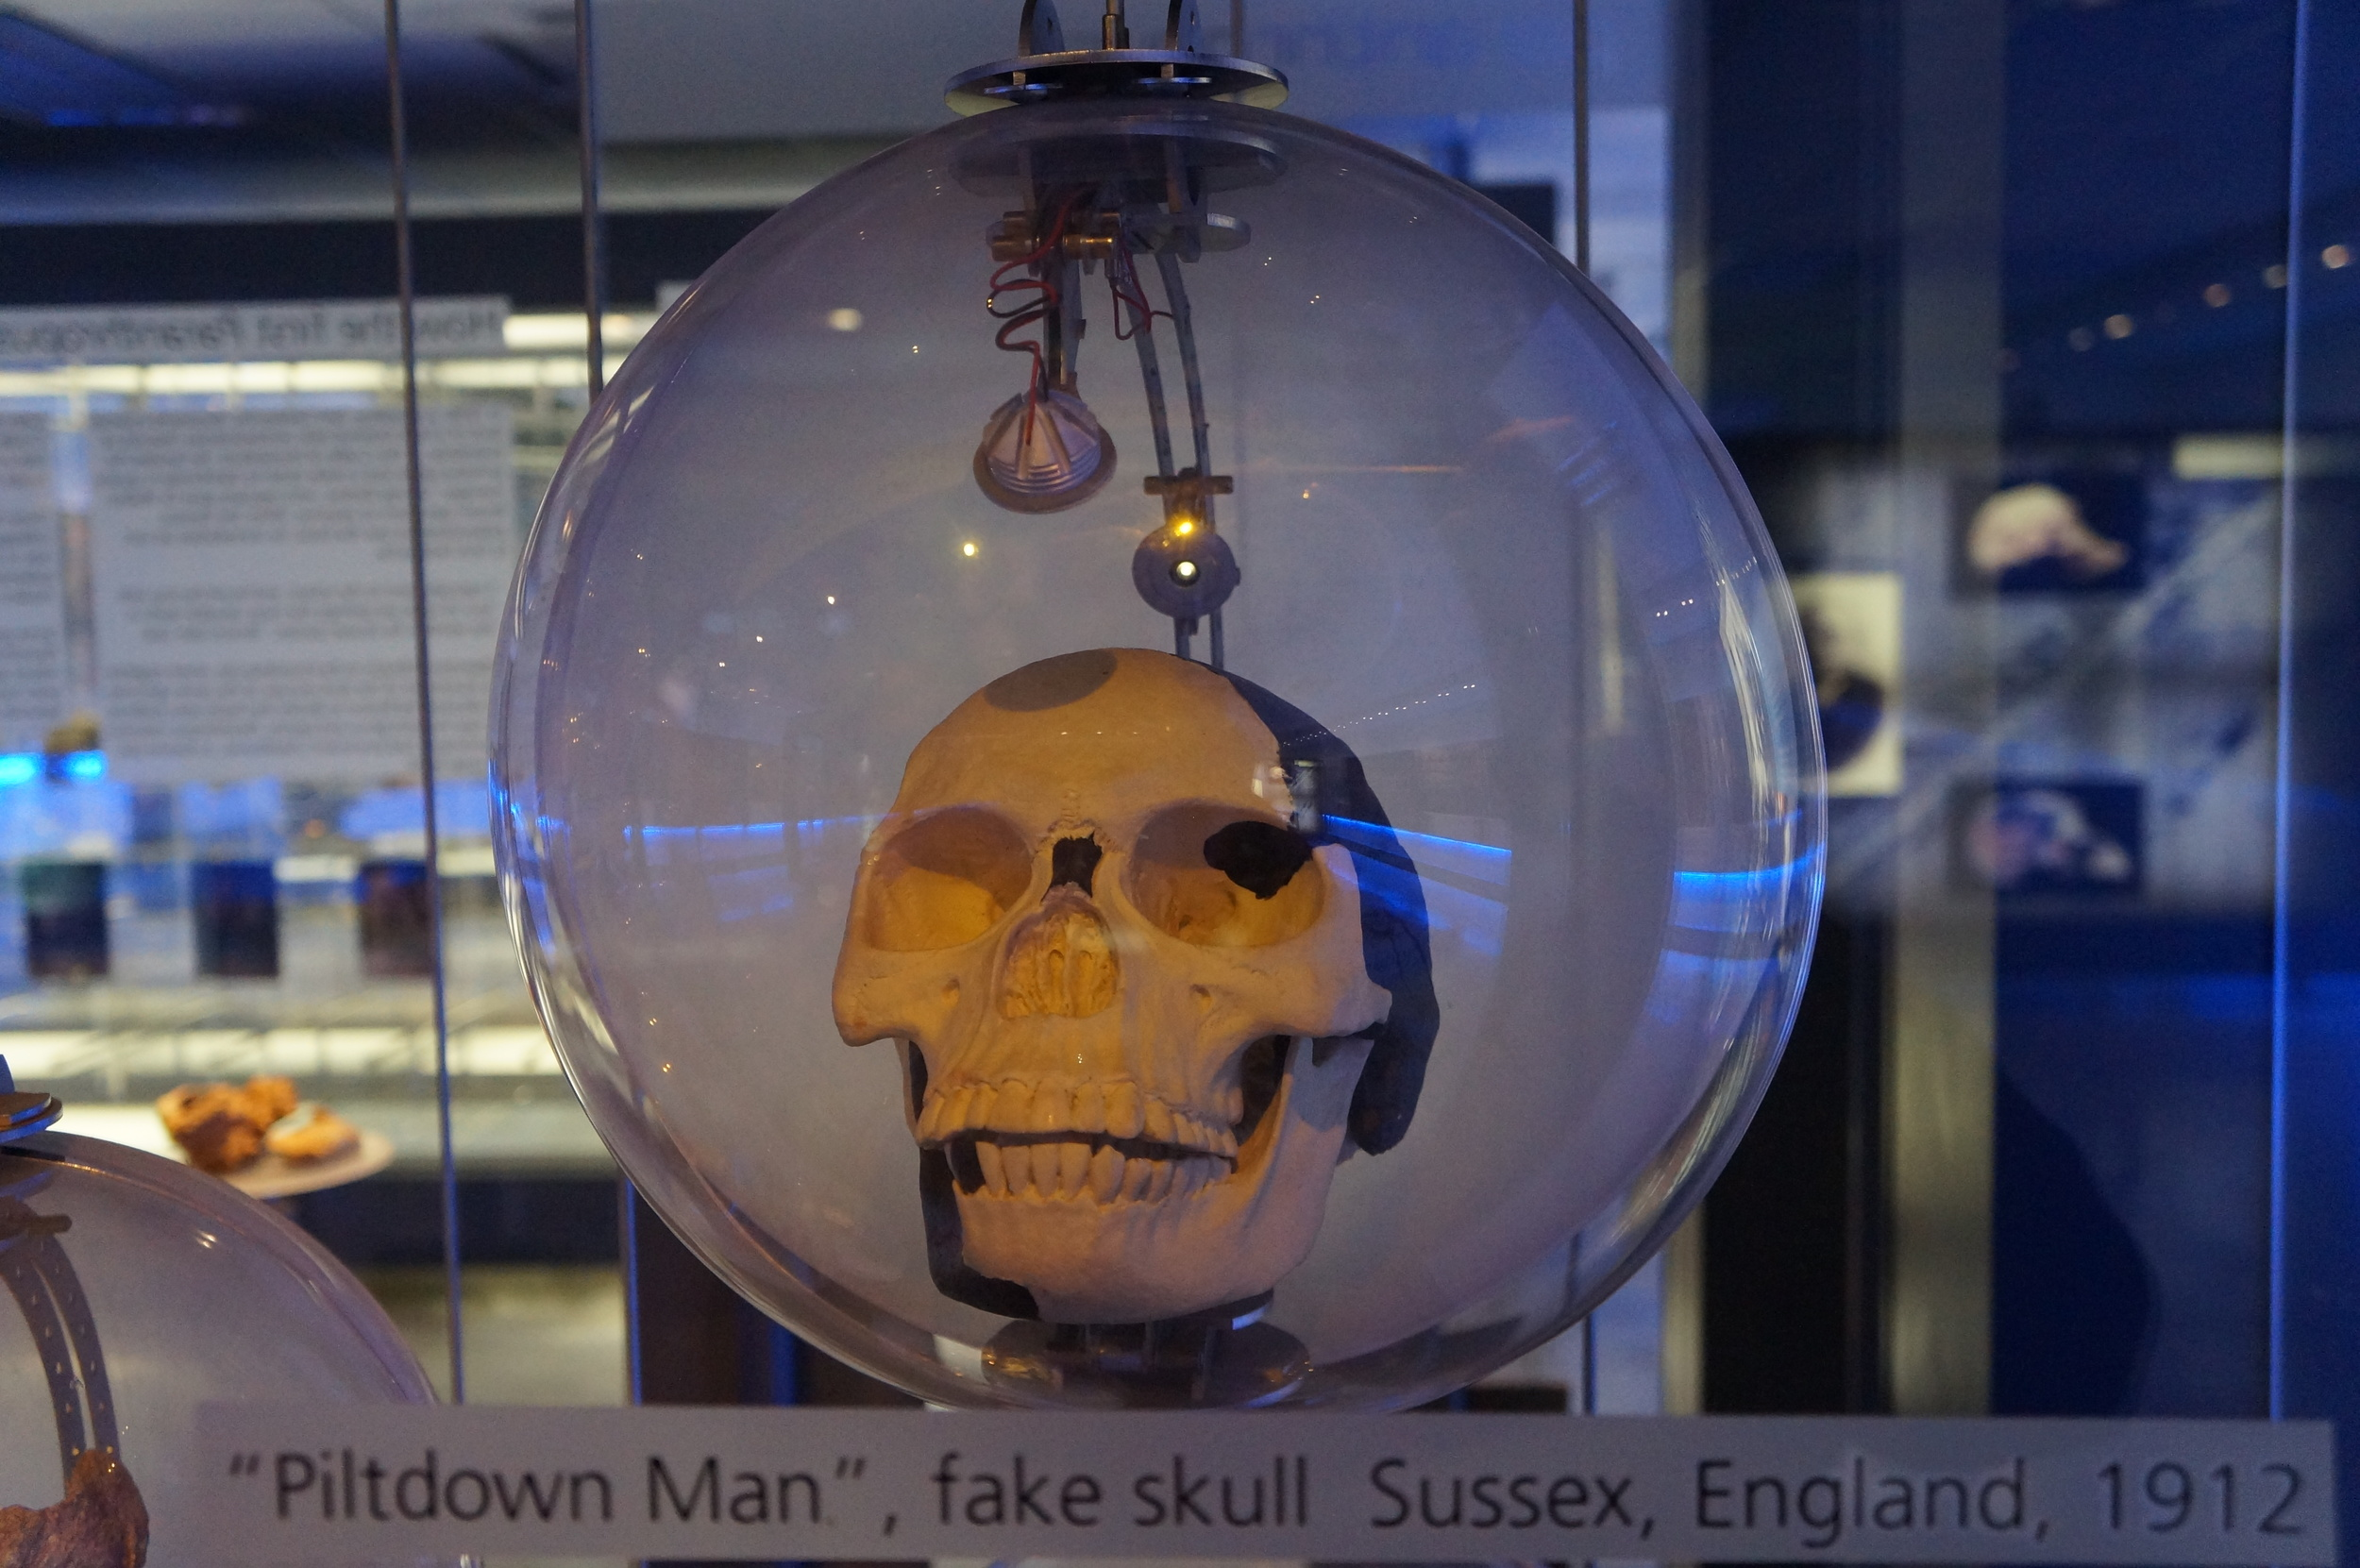 """The """"Piltdown Man"""" cast on display at Sterkfontein Cave Museum & Visitor Center, South Africa. (Photo: L. Pyne)"""